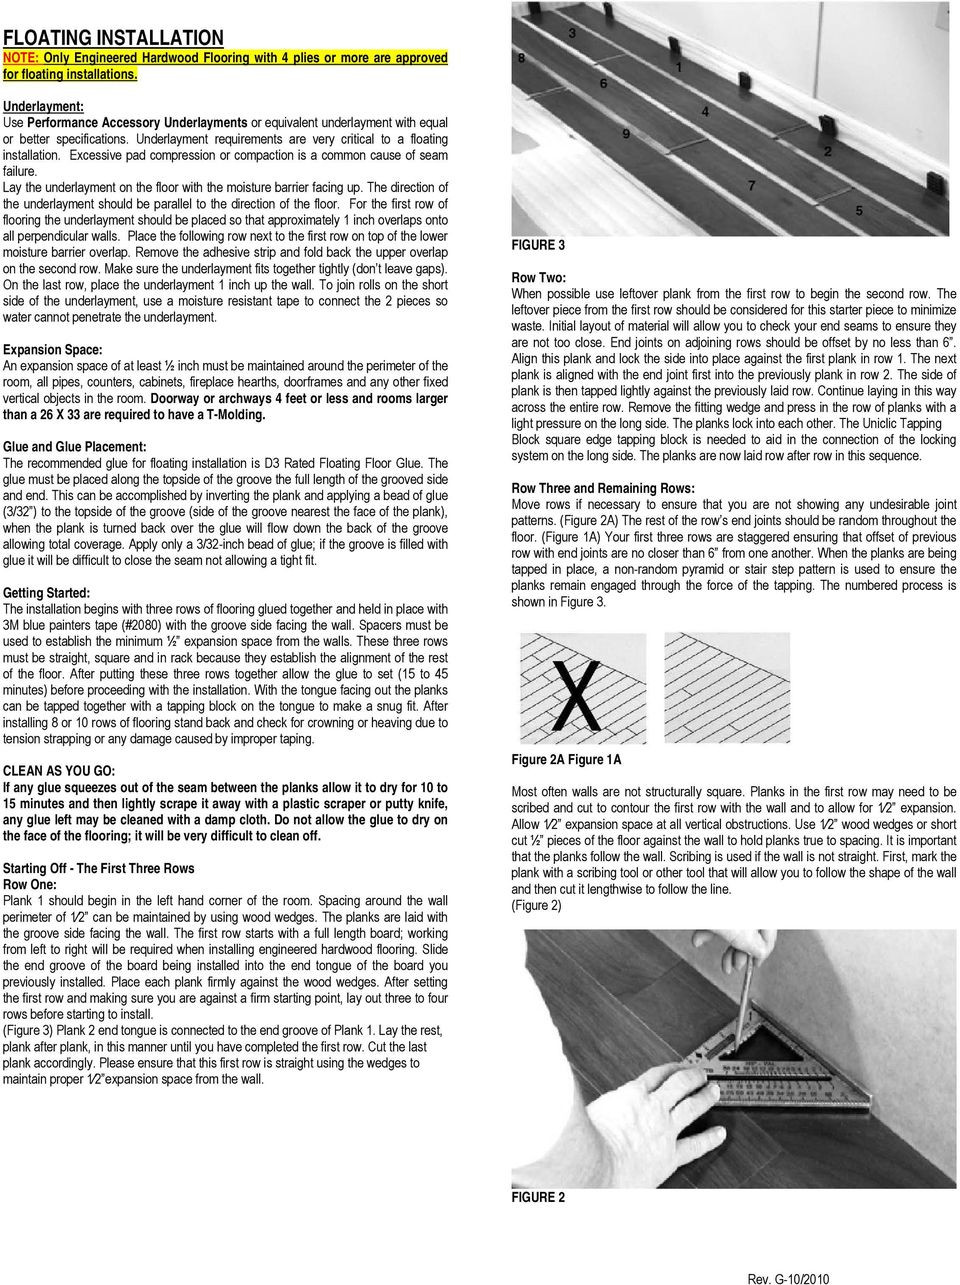 Vapor Barrier Paper for Hardwood Floor Of Engineered Hardwood Flooring Installation Instructions Pdf Inside Excessive Pad Compression or Compaction is A Common Cause Of Seam Failure Lay the Underlayment